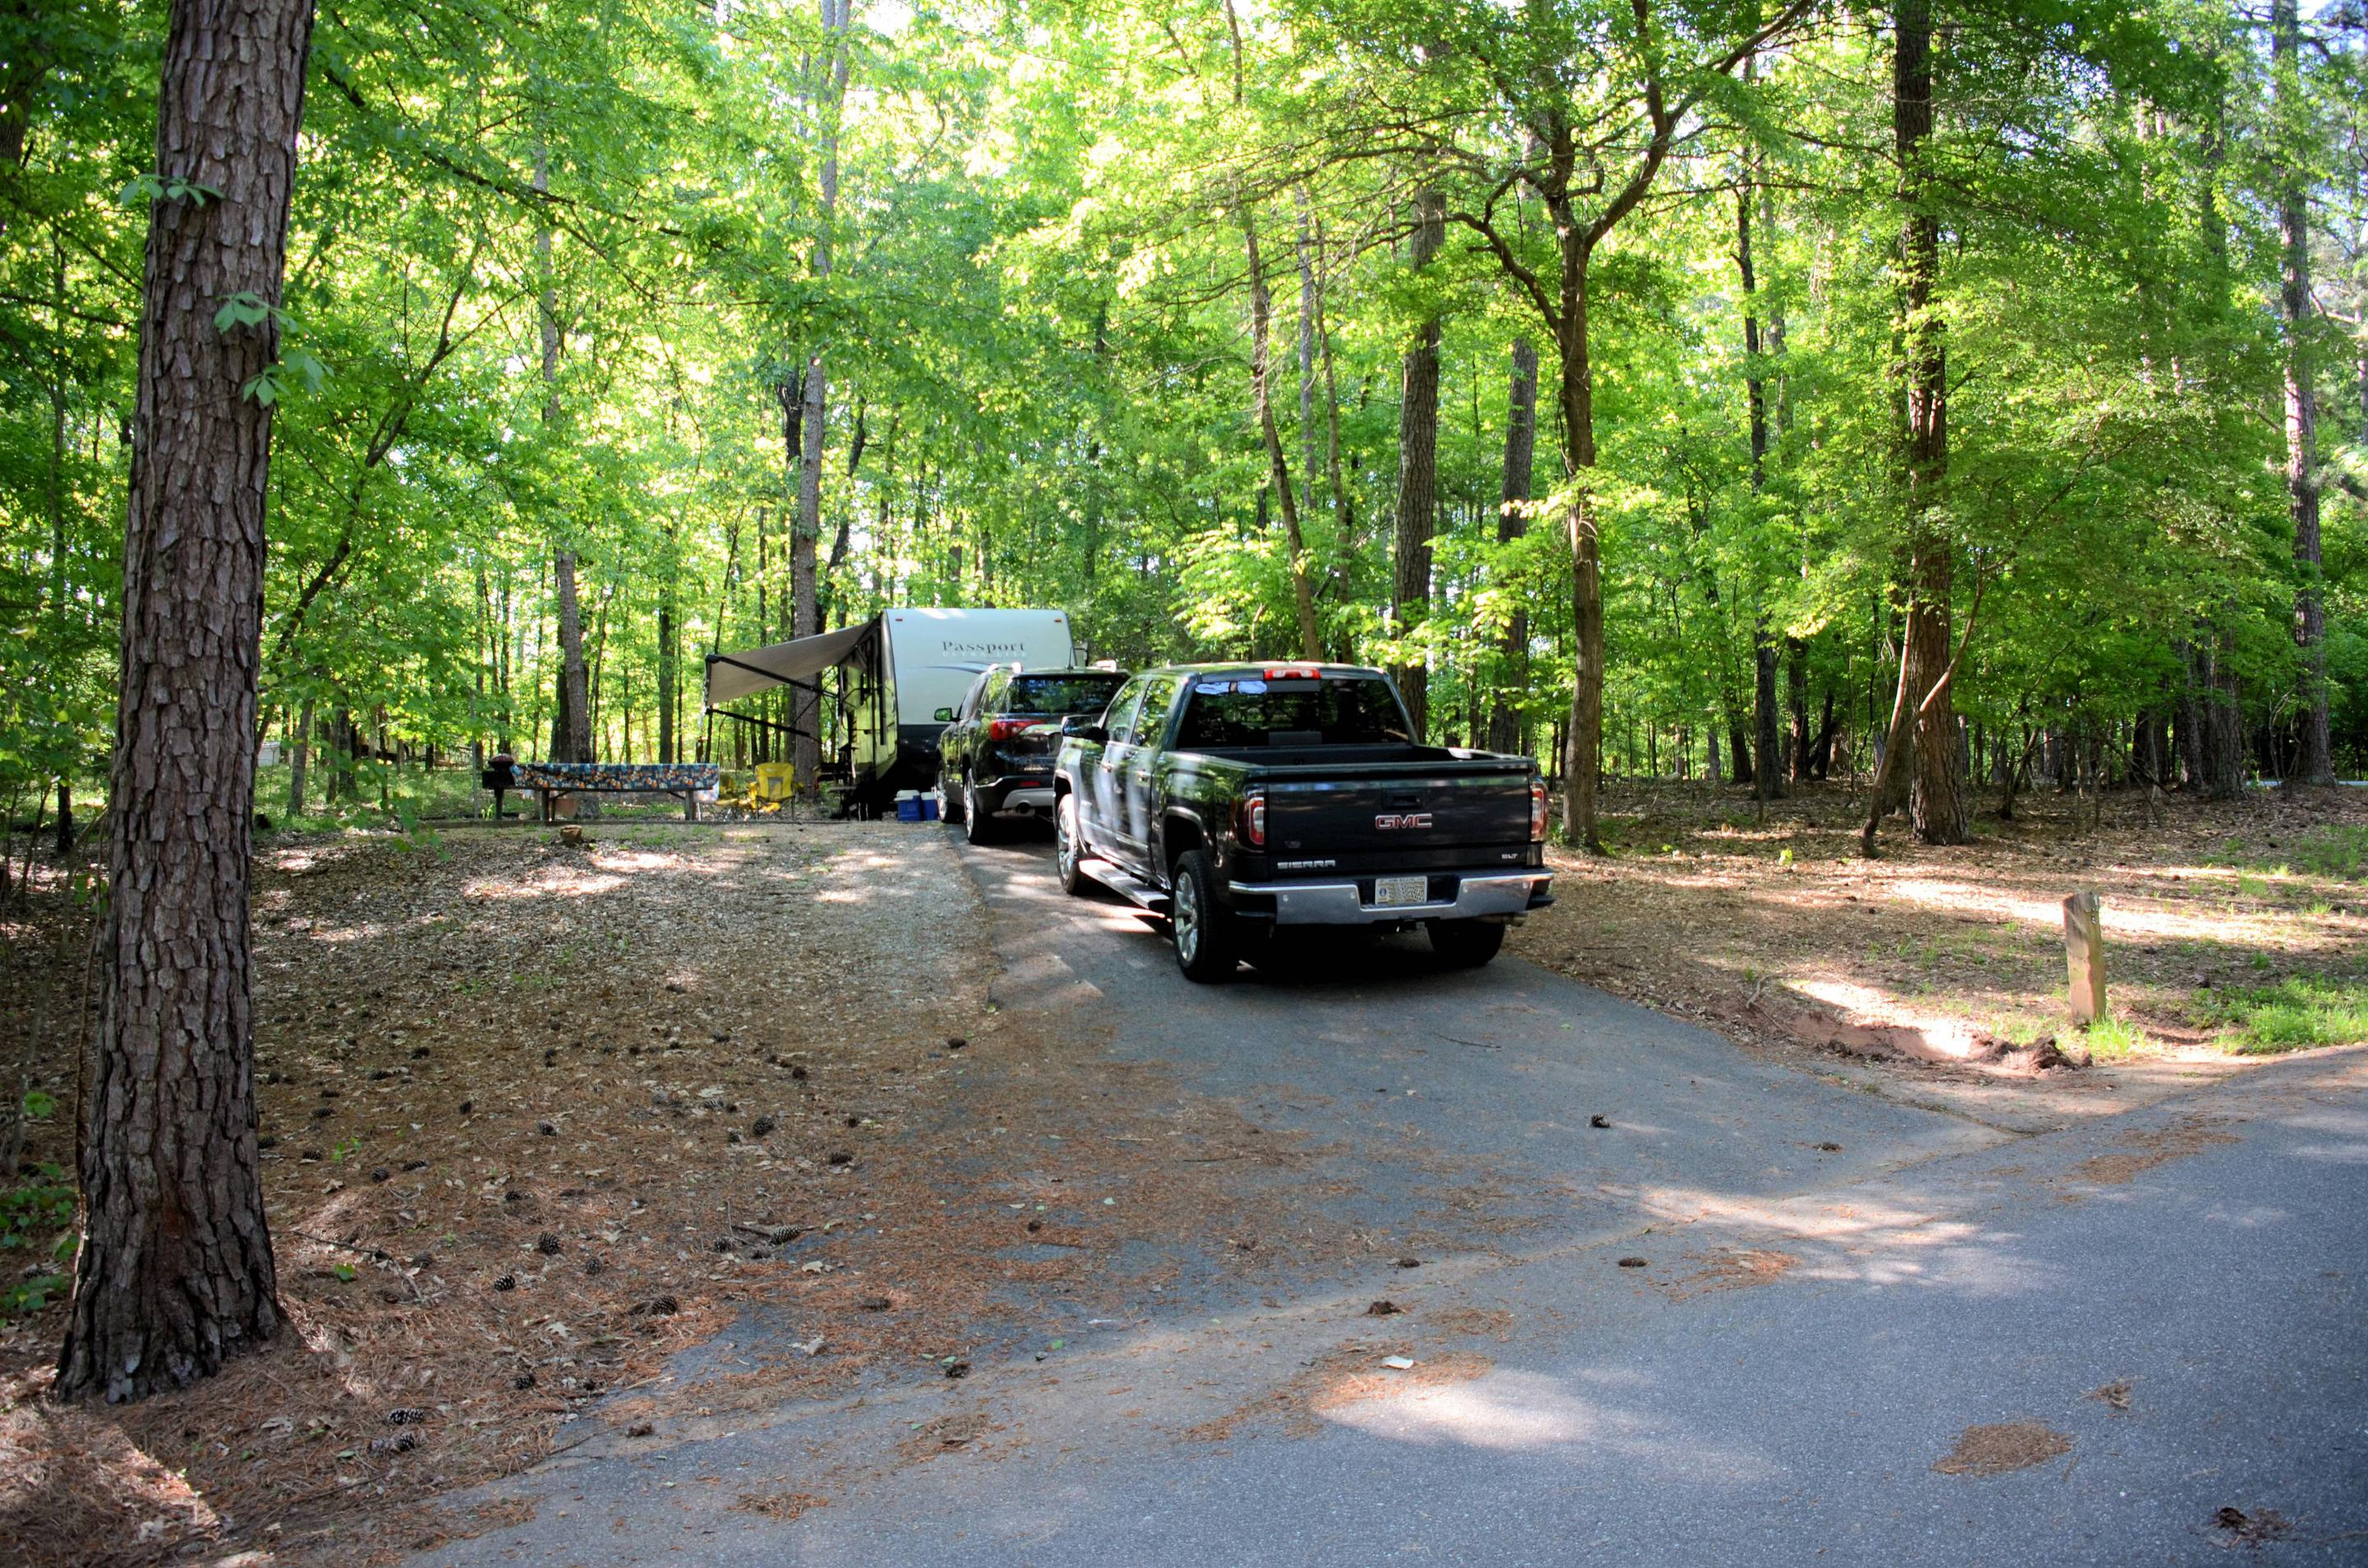 Entrance angle, awning clearanceMcKinney Campground, campsite #1